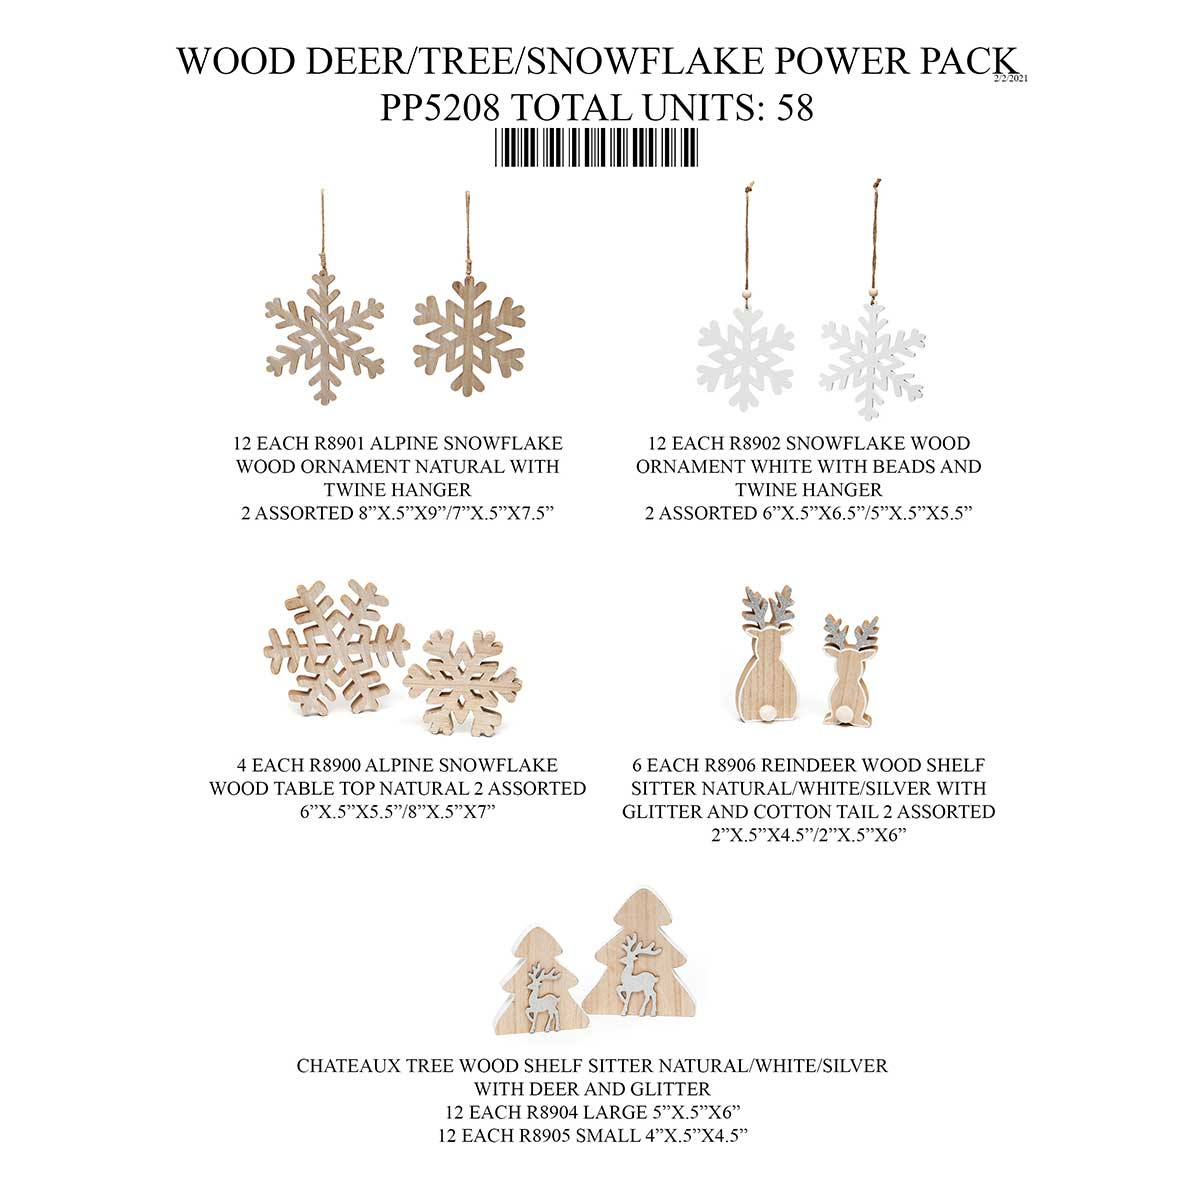 WOOD SNOWFLAKE/TREE/DEER POWER PACK 58 UNITS PP5208